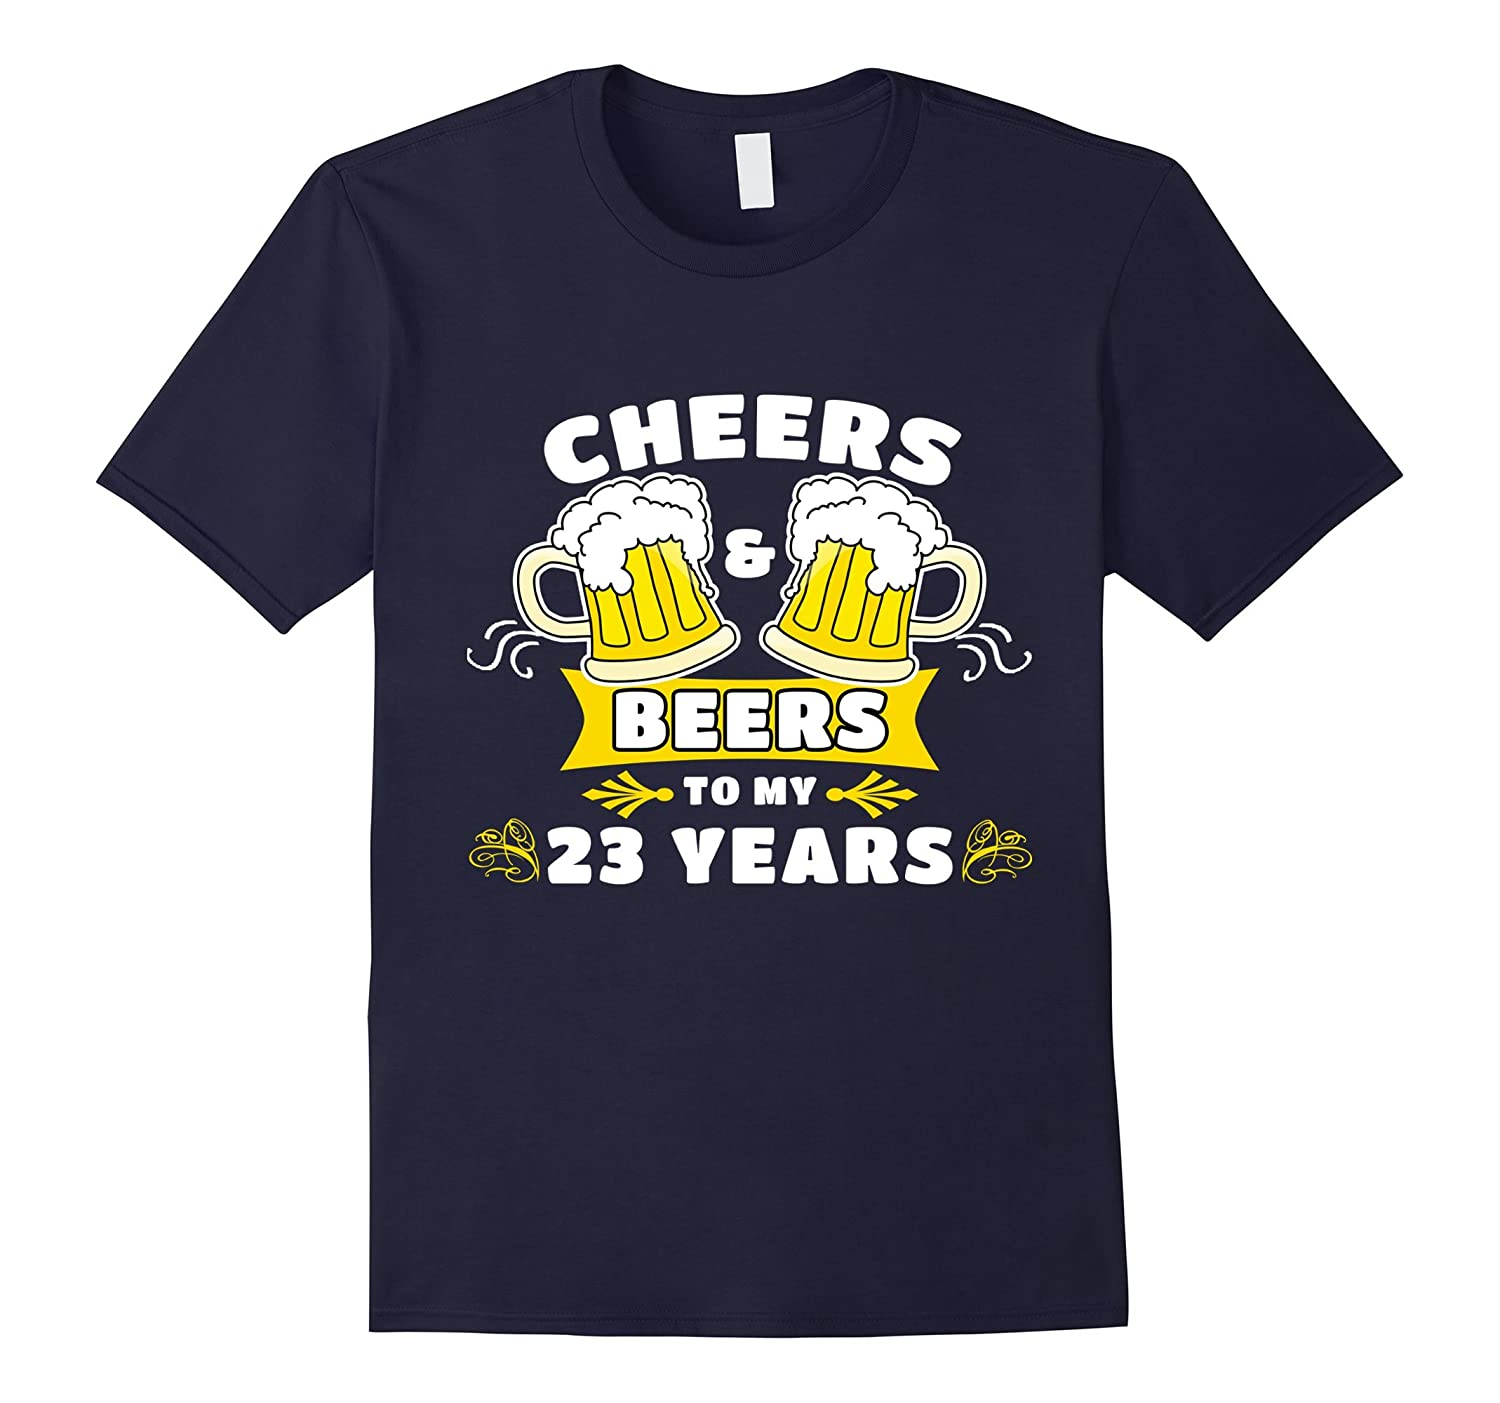 Cheers And Beers To My 23 Years T-Shirt 23rd Birthday Gift-BN